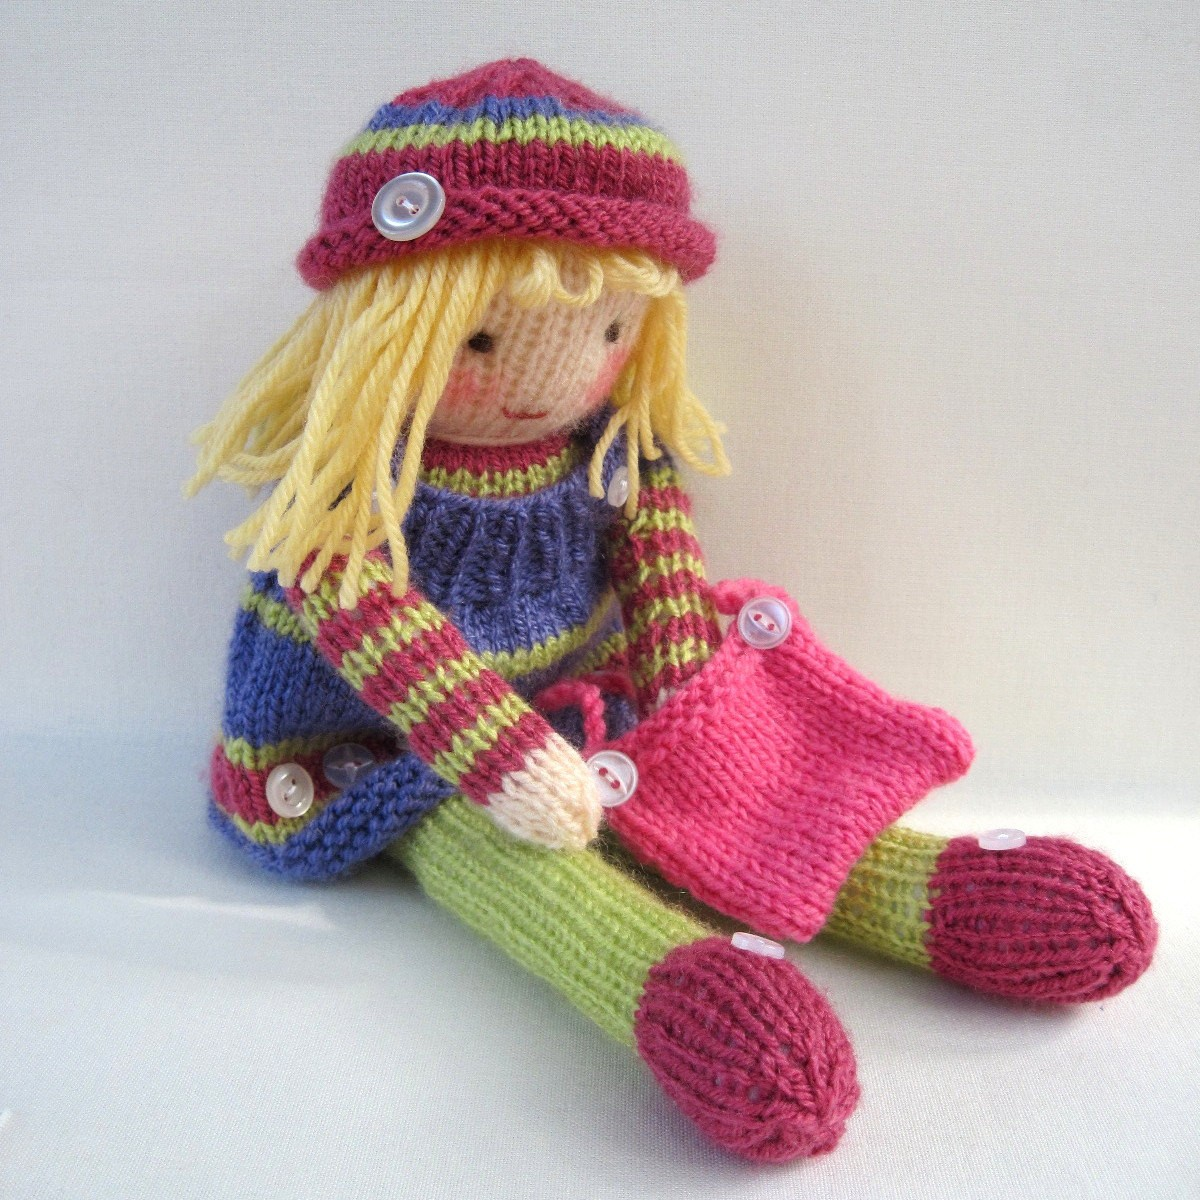 Free Knitting Patterns For Beginners Toys : Knitted Doll Patterns A Knitting Blog